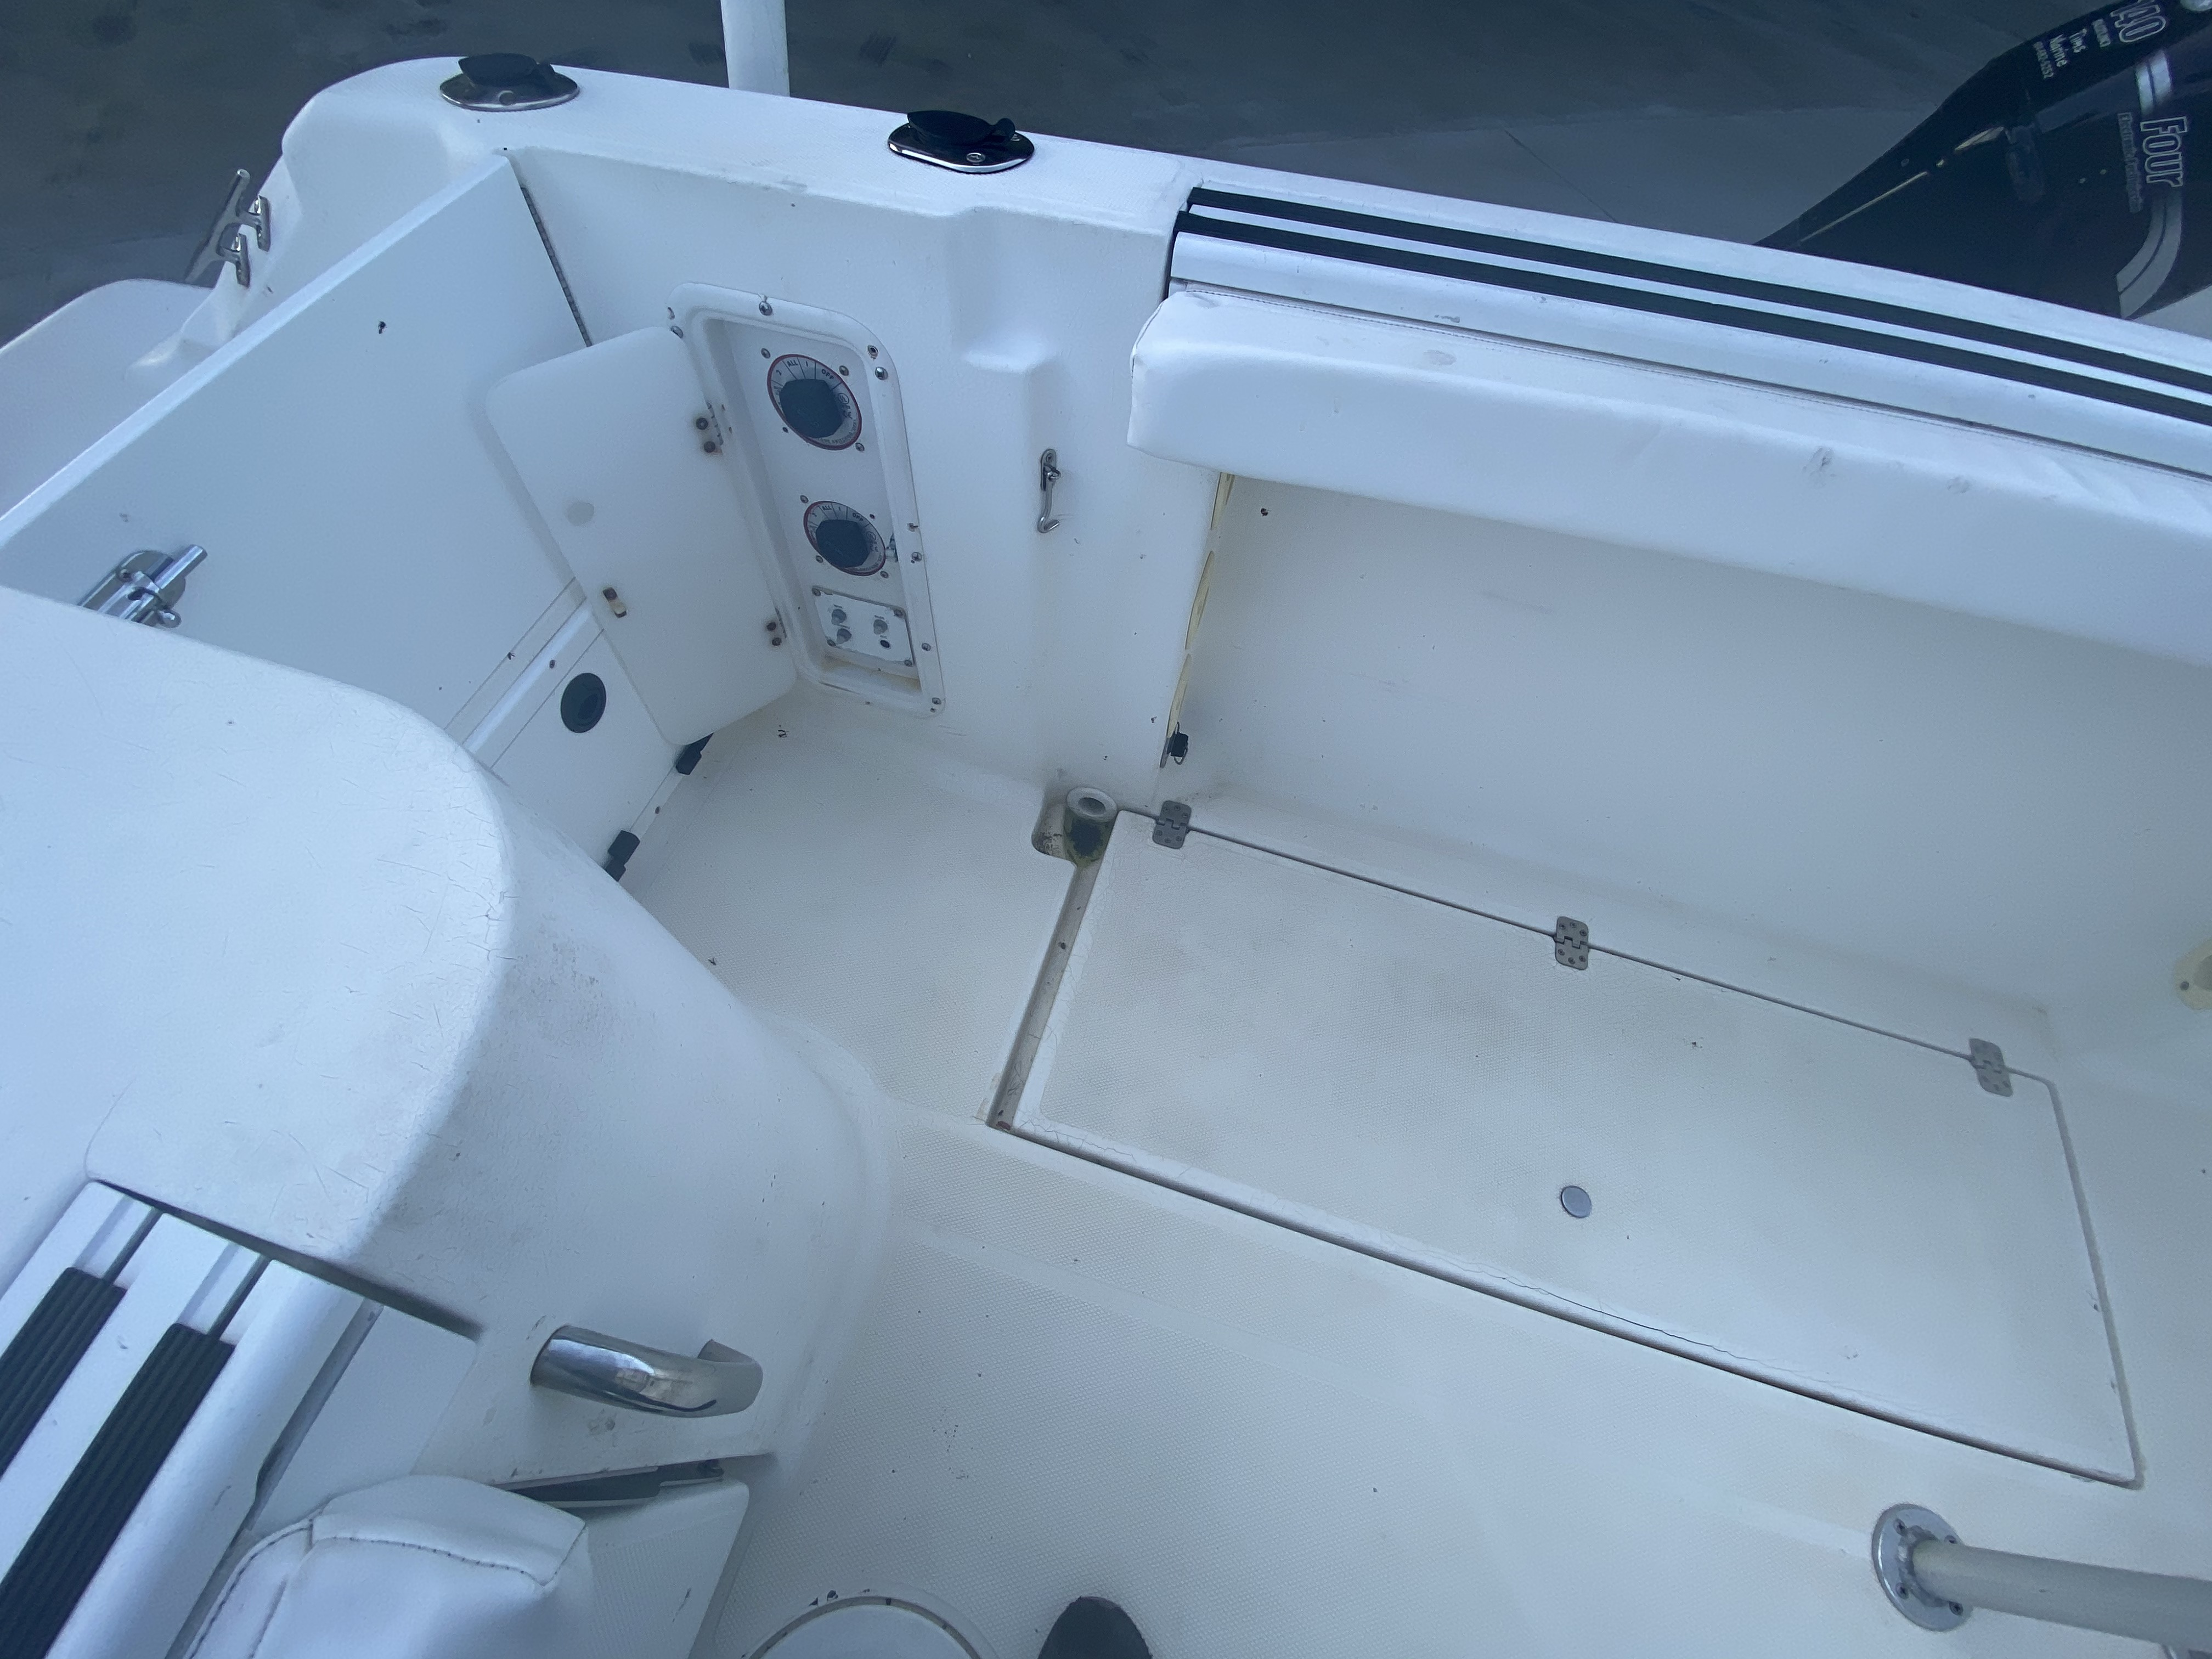 2002 Wellcraft boat for sale, model of the boat is 230 & Image # 4 of 14